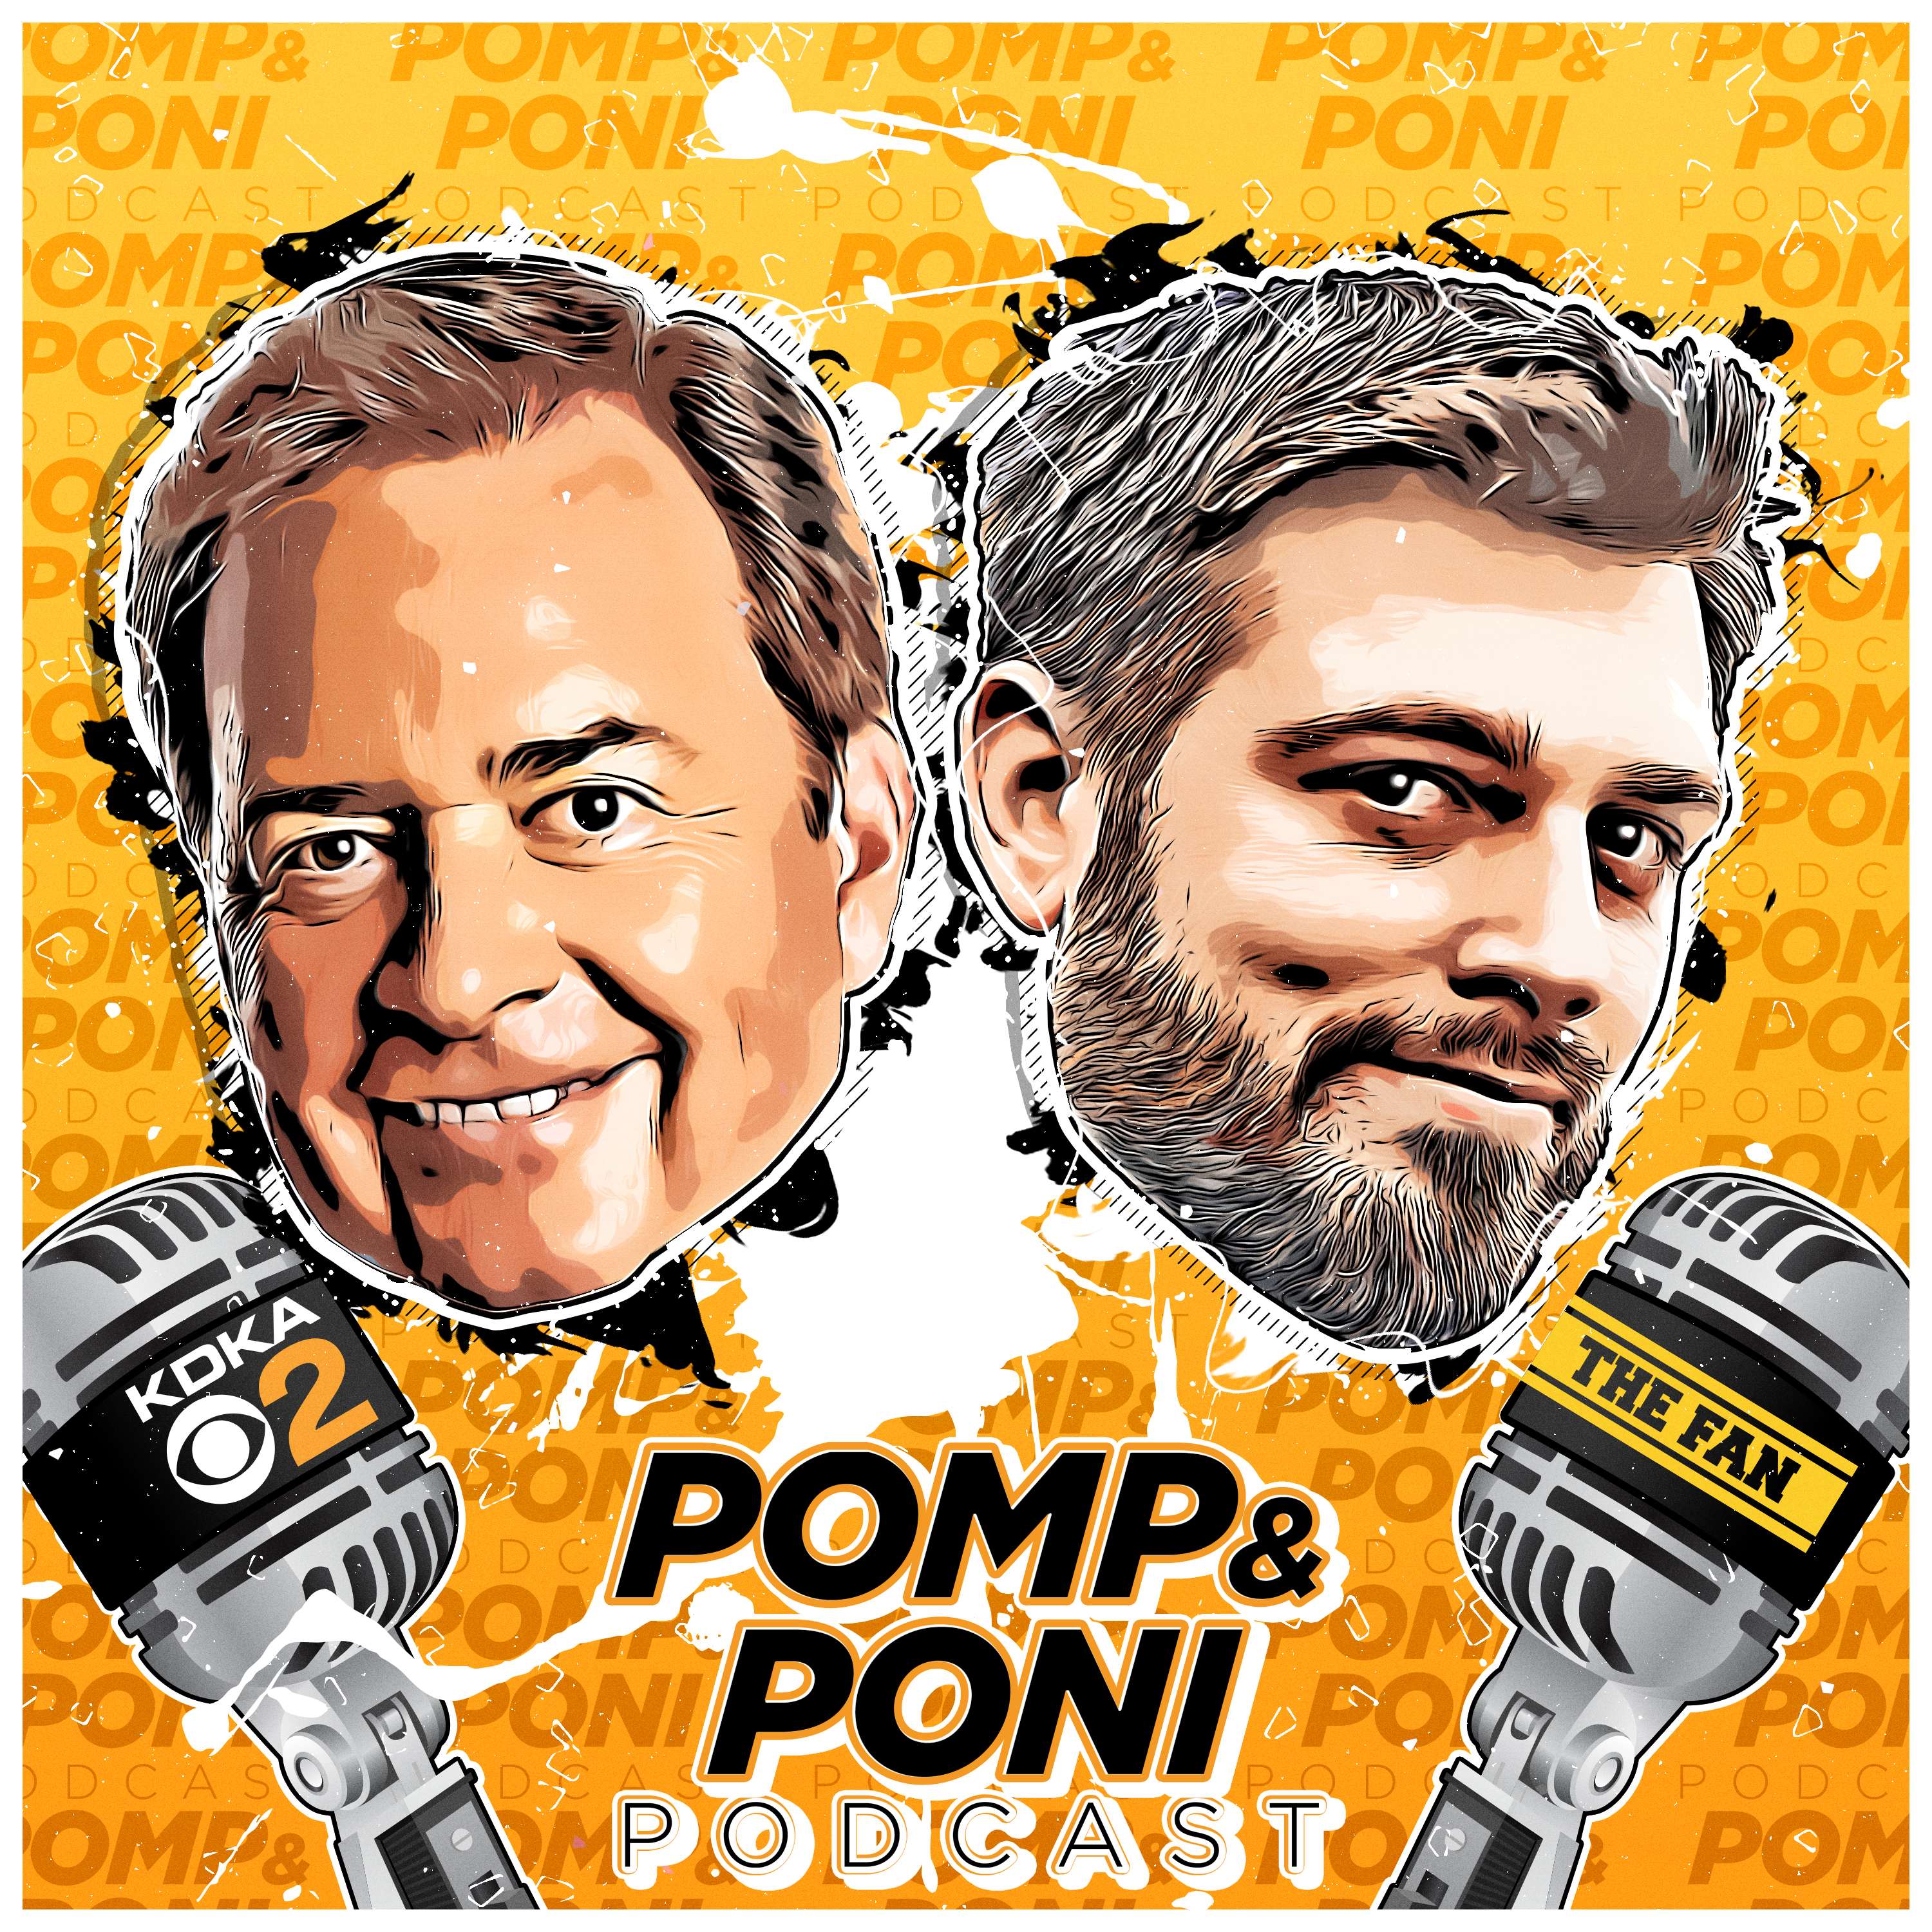 The Pomp and Poni Podcast